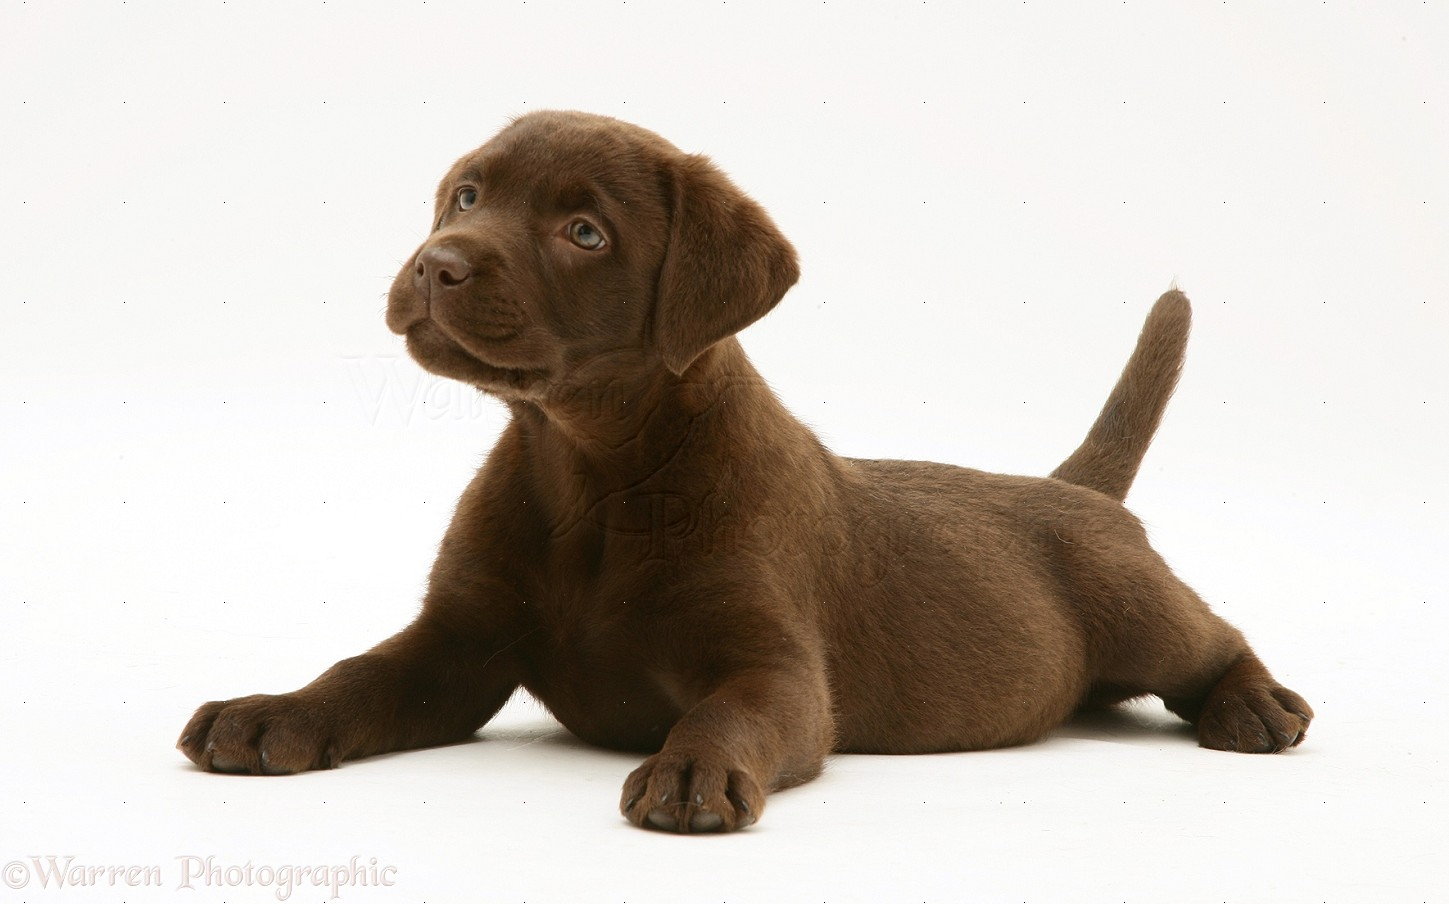 Dog: Chocolate Labrador Retriever pup photo.